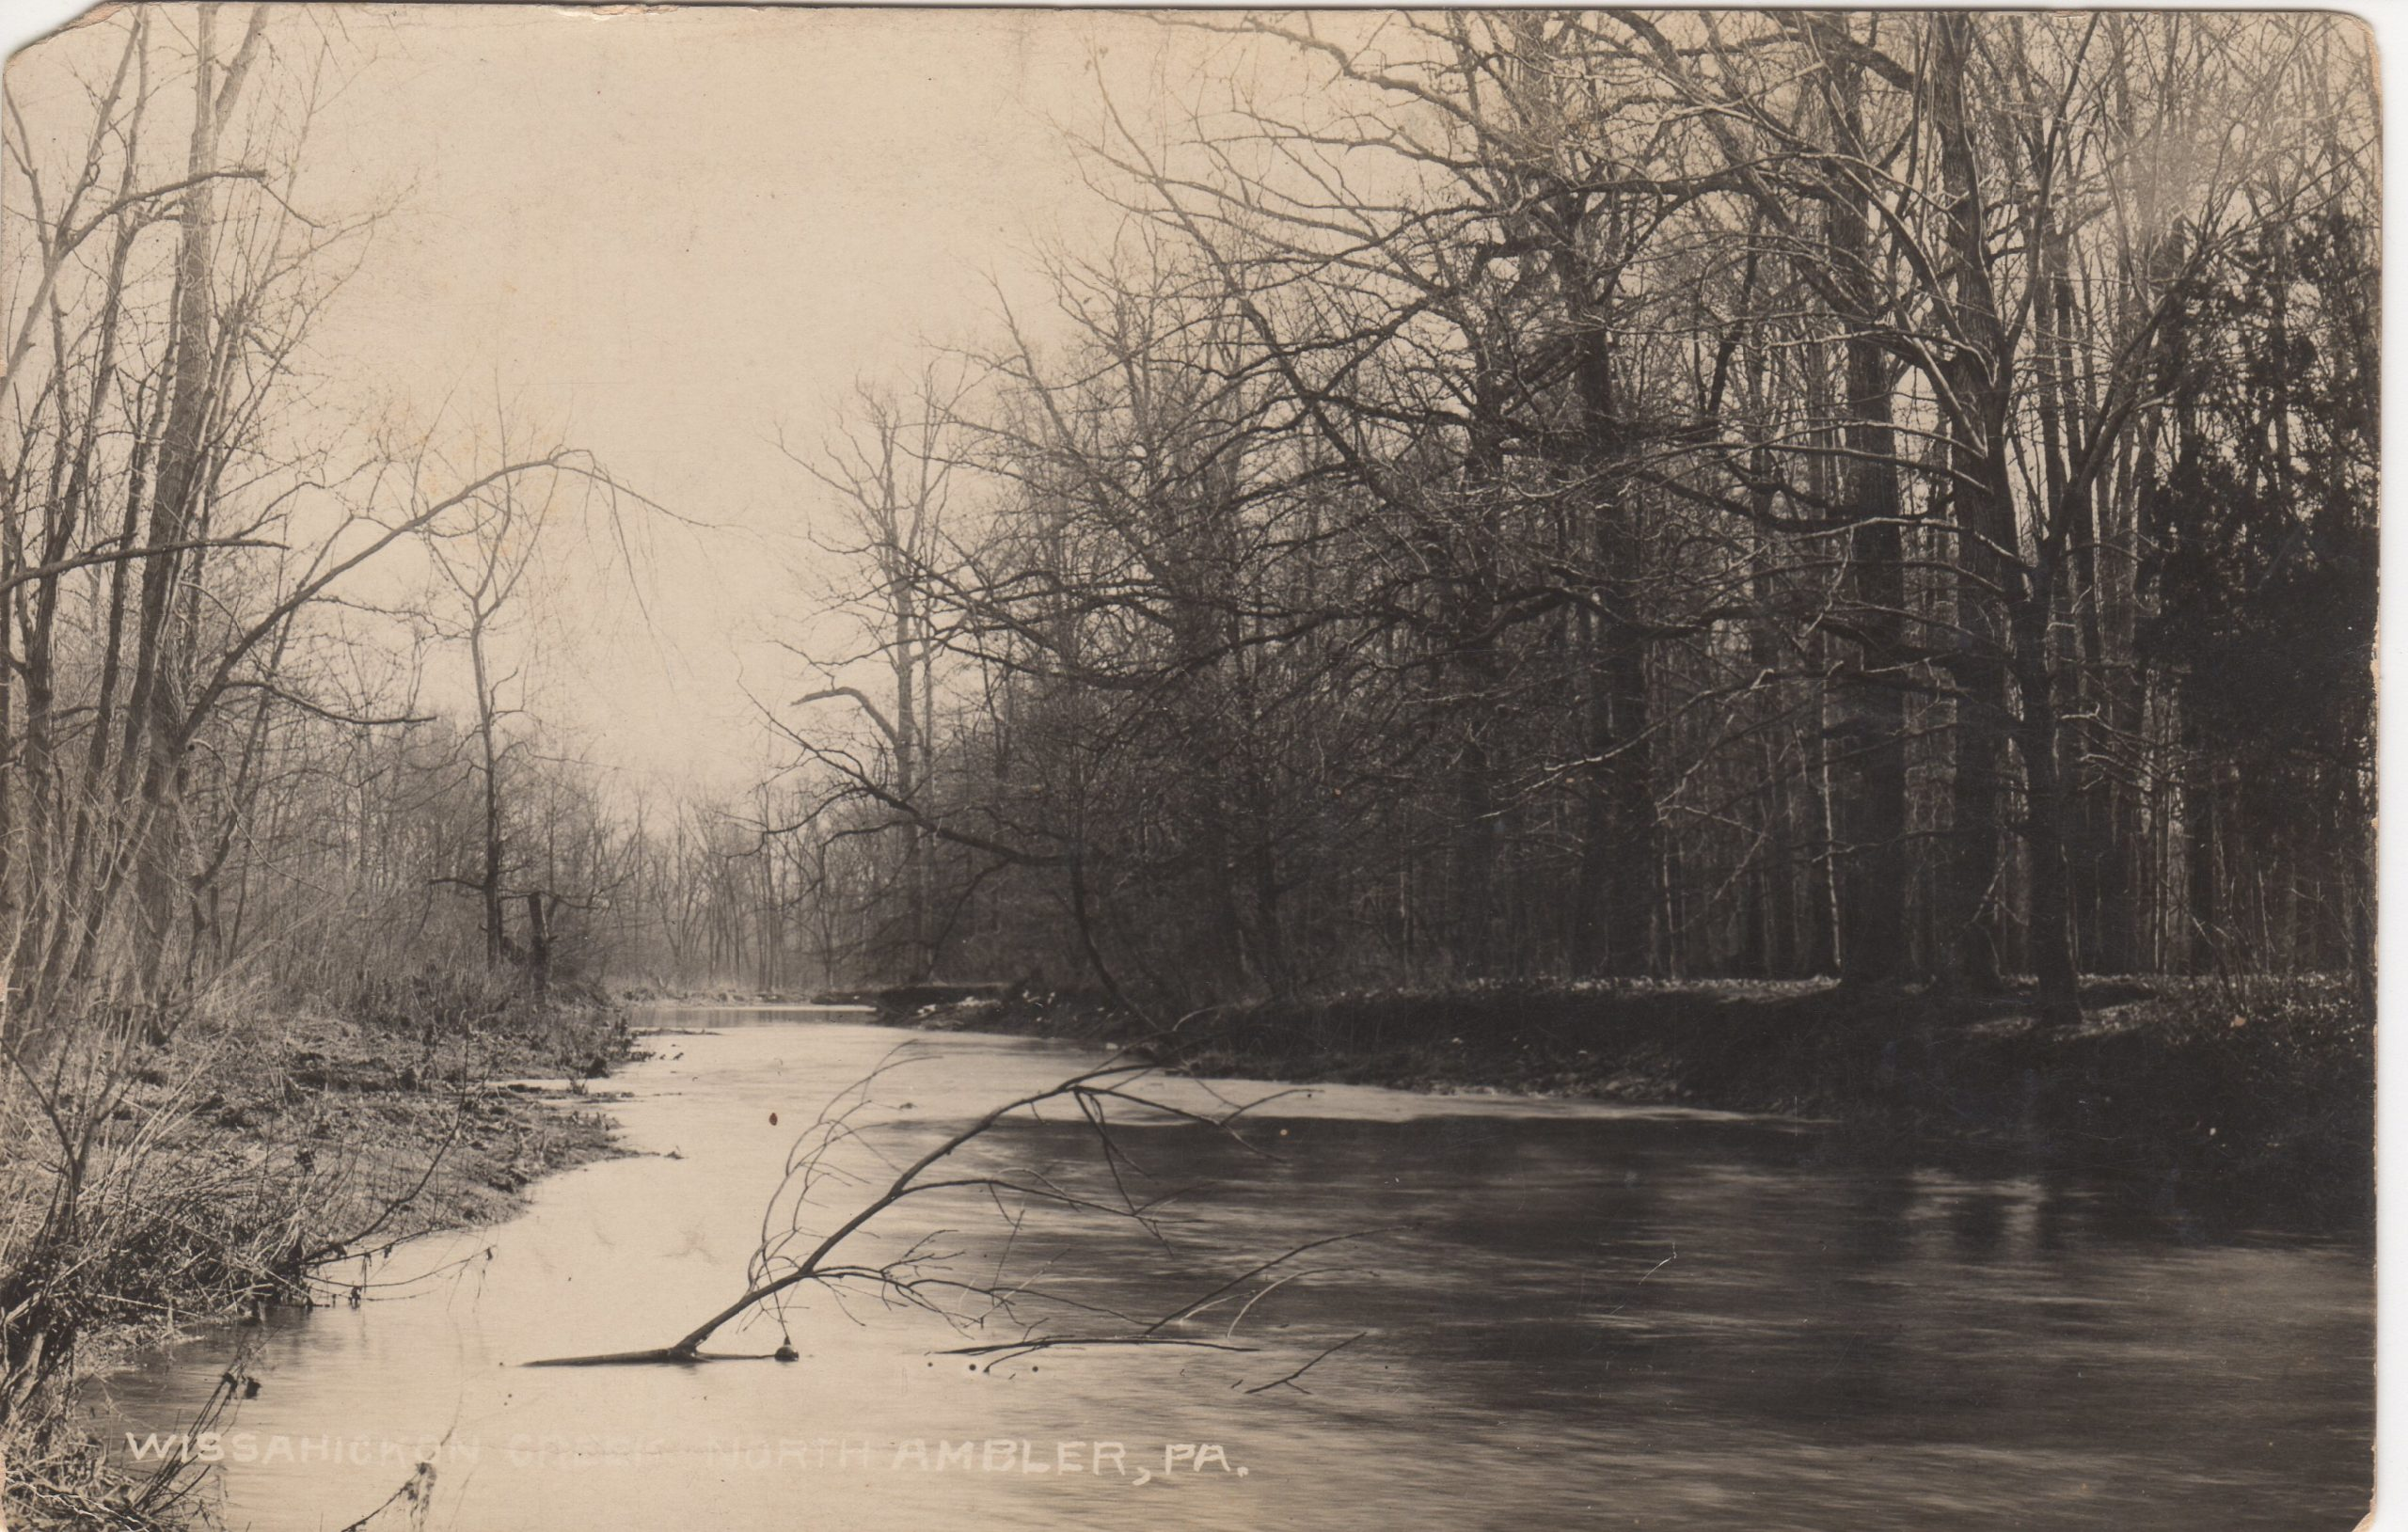 4125.37 Ambler Pa Postcard_Wissahickon Creek North Ambler_circa 1913